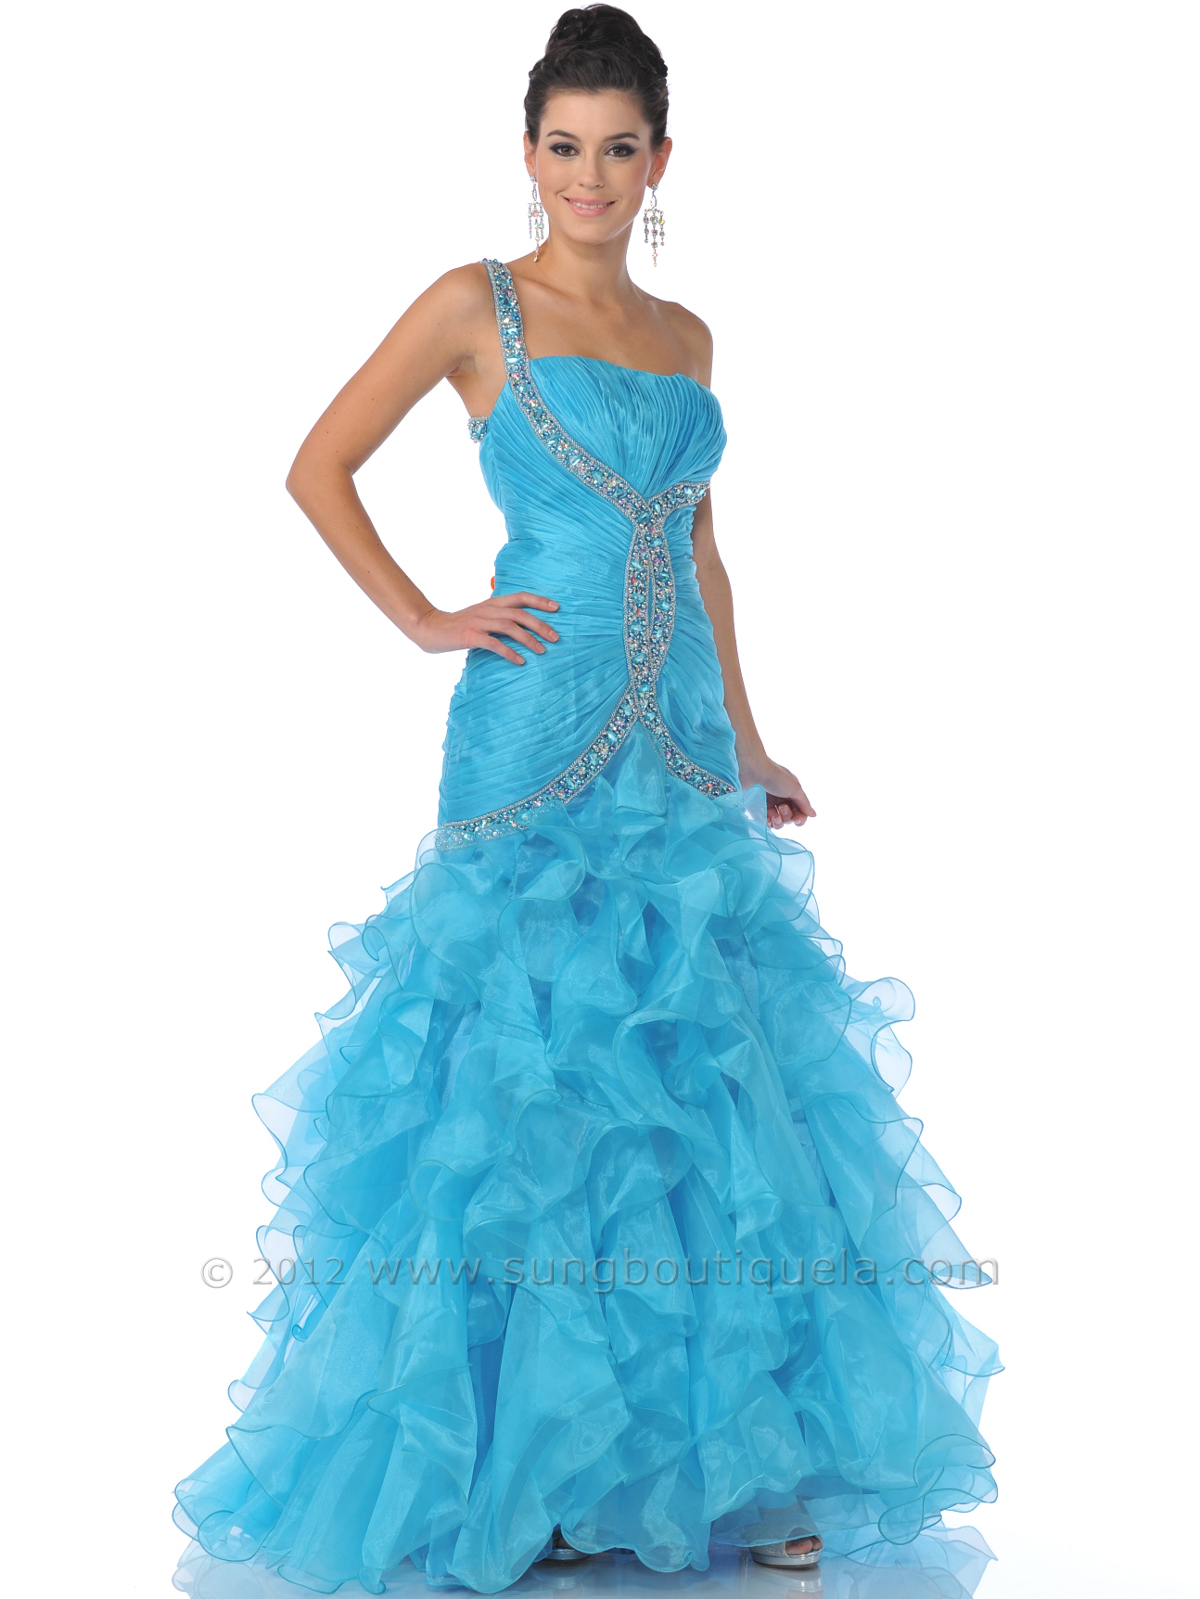 Turquoise One Shoulder Embellished Strap Prom Dress Sung